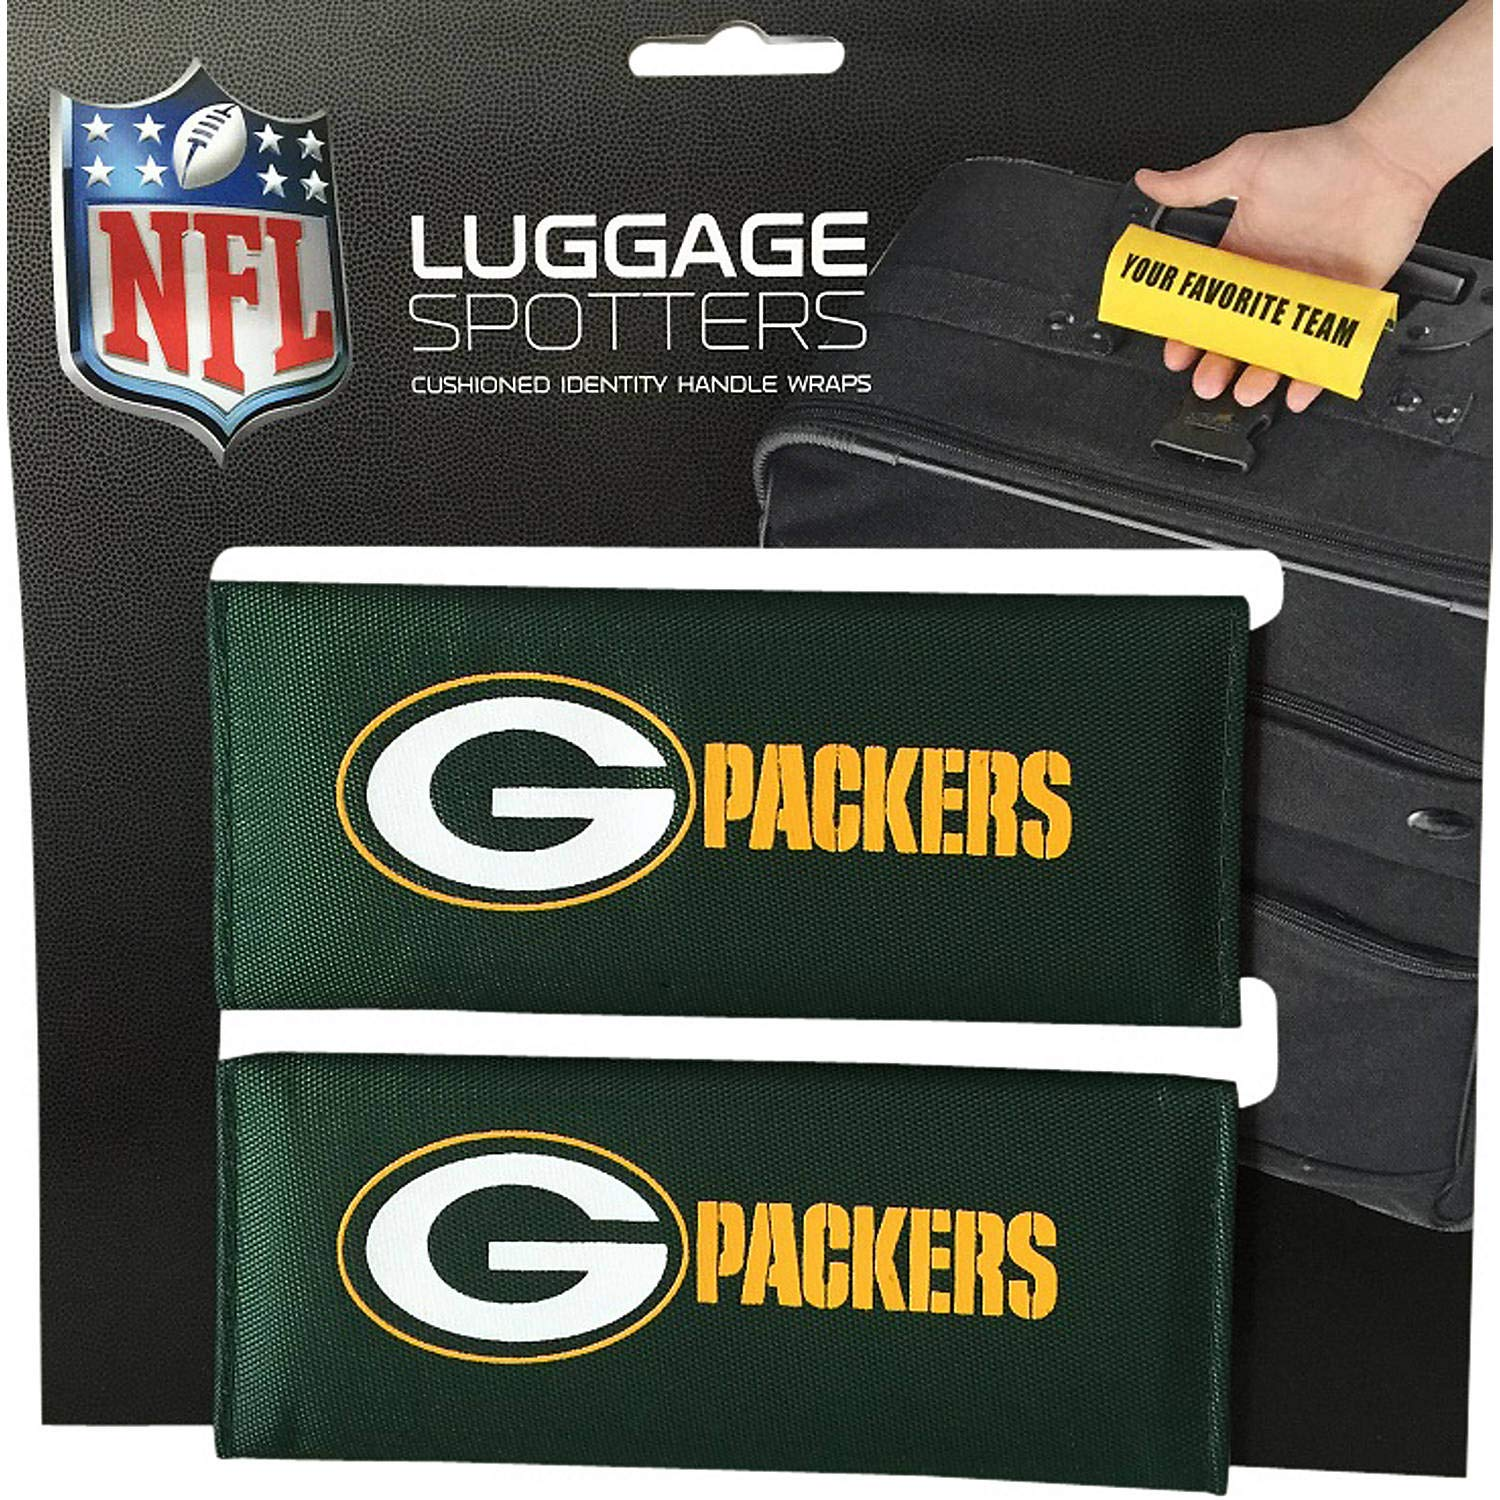 50% OFF! PACKERS Luggage Spotter Suitcase Handle Wrap Bag Tag Locator with I.D. Pocket (2-PACK) CLOSEOUT! THEY ARE SELLING OUT FAST! by Luggage Spotter